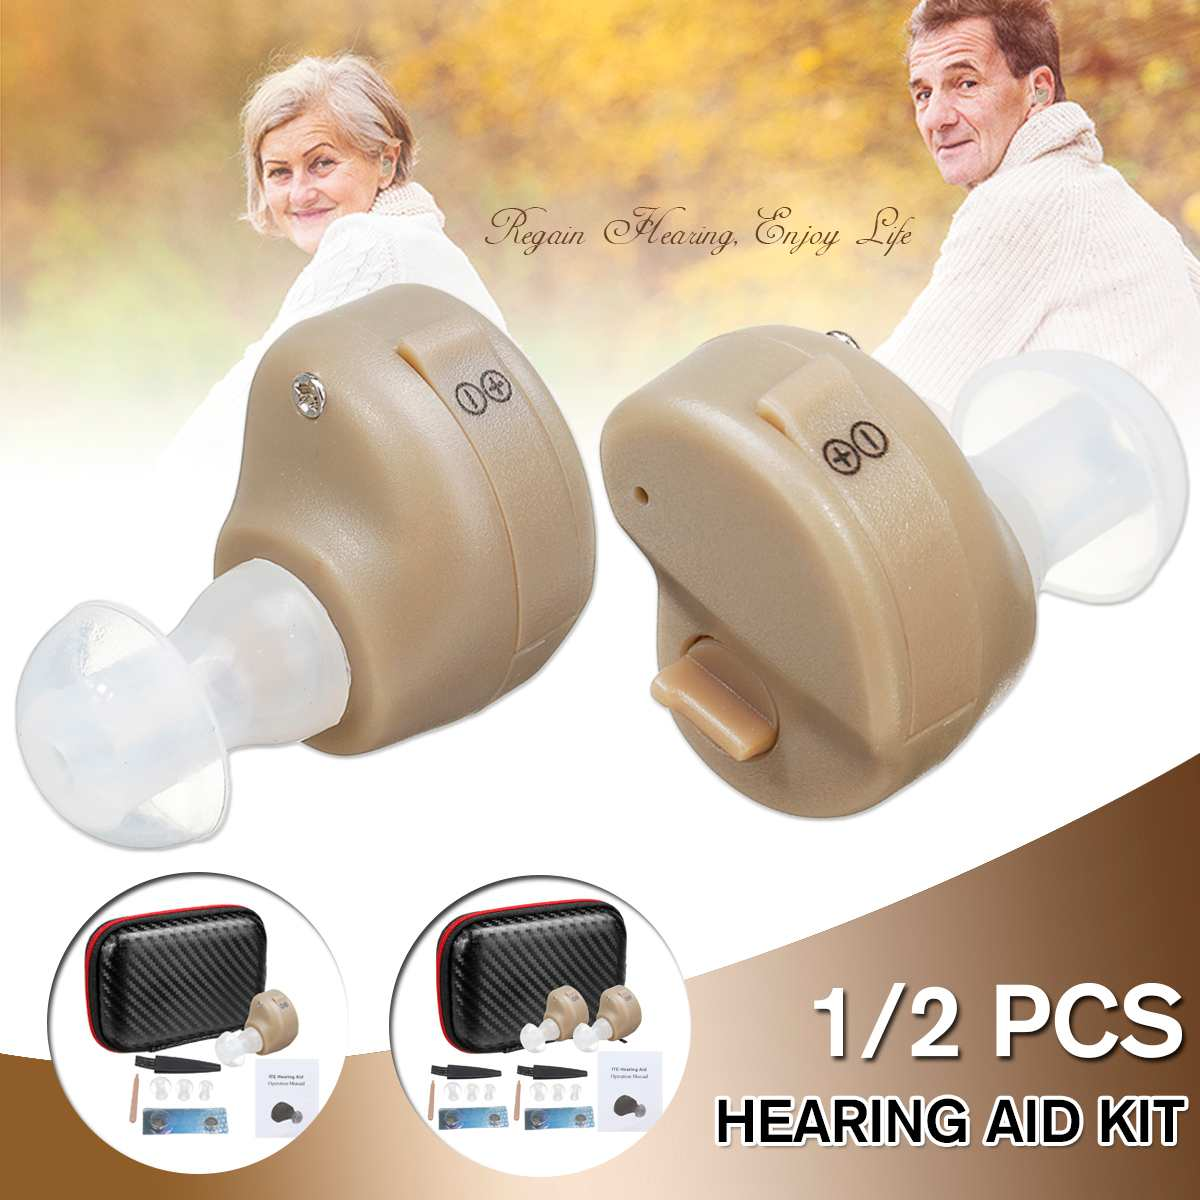 New 1/2PCS Wireless Hearing Aid Portable Small Mini In The Ear Sound Amplifier Adjustable Tone Digital Aids Care Hearing Aids    - AliExpress